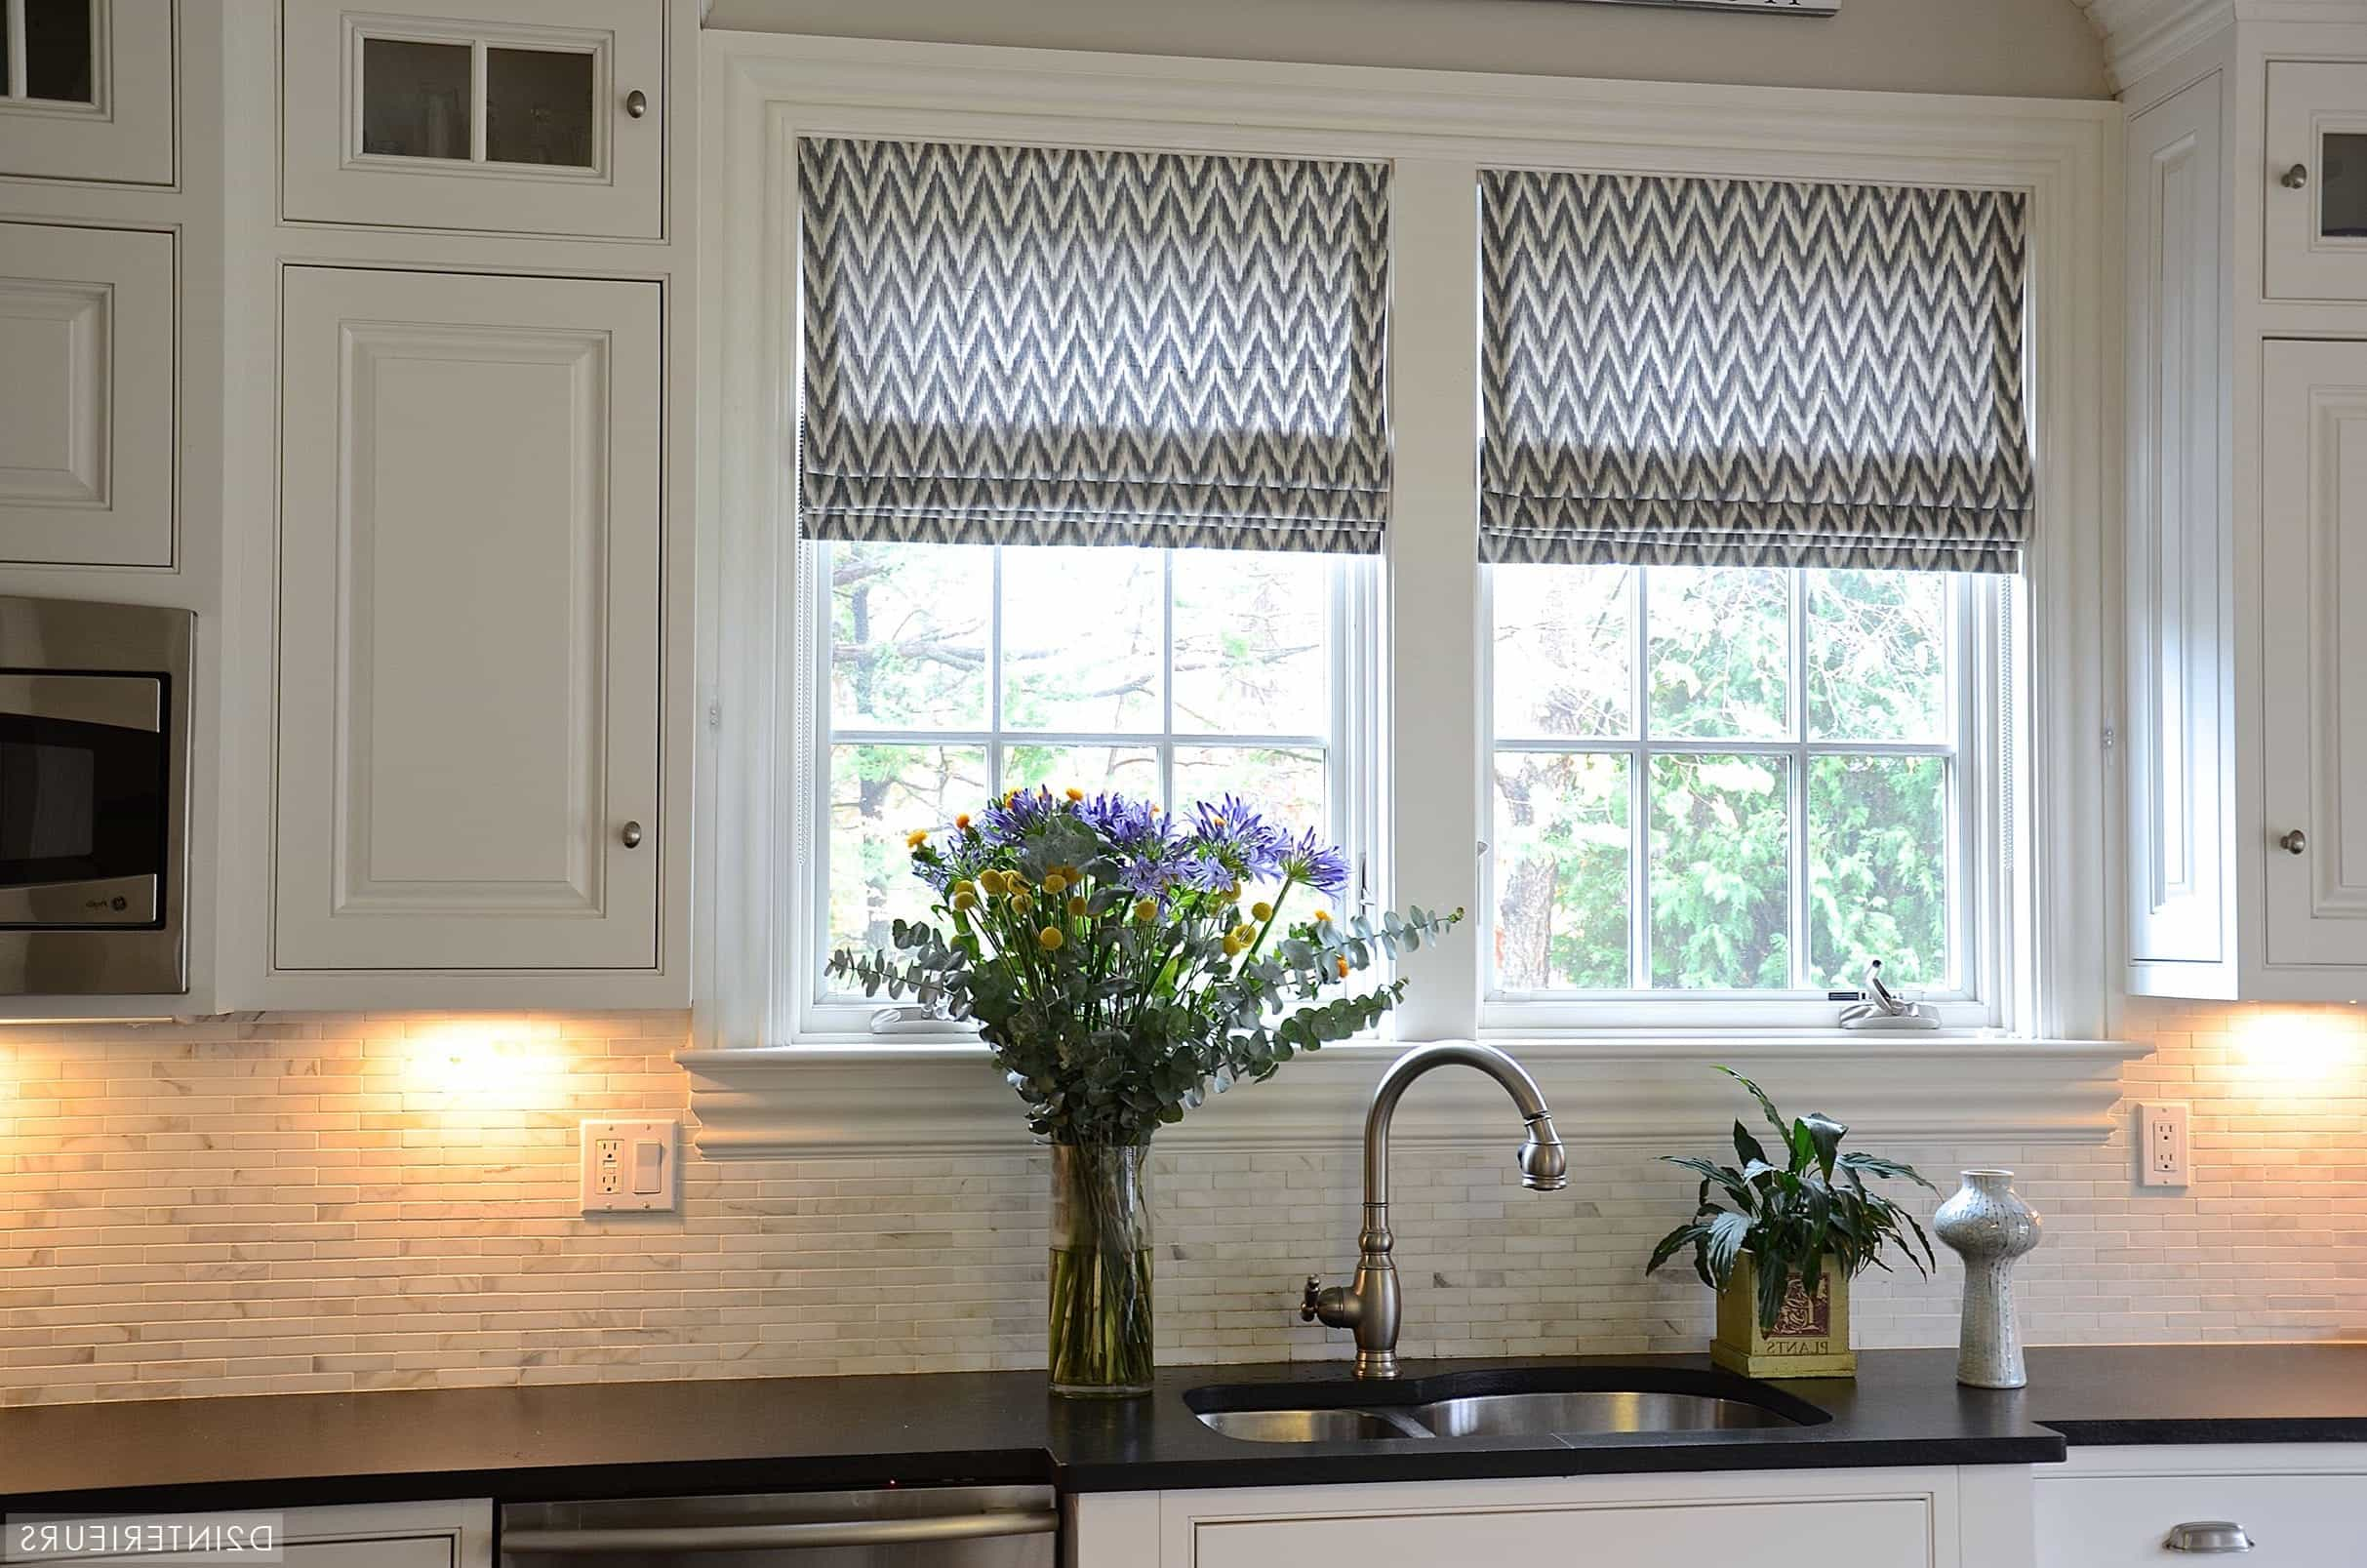 Chevron Roman Shades Pop In Black And White Curtain For Traditional Kitchen Window (Image 1 of 11)